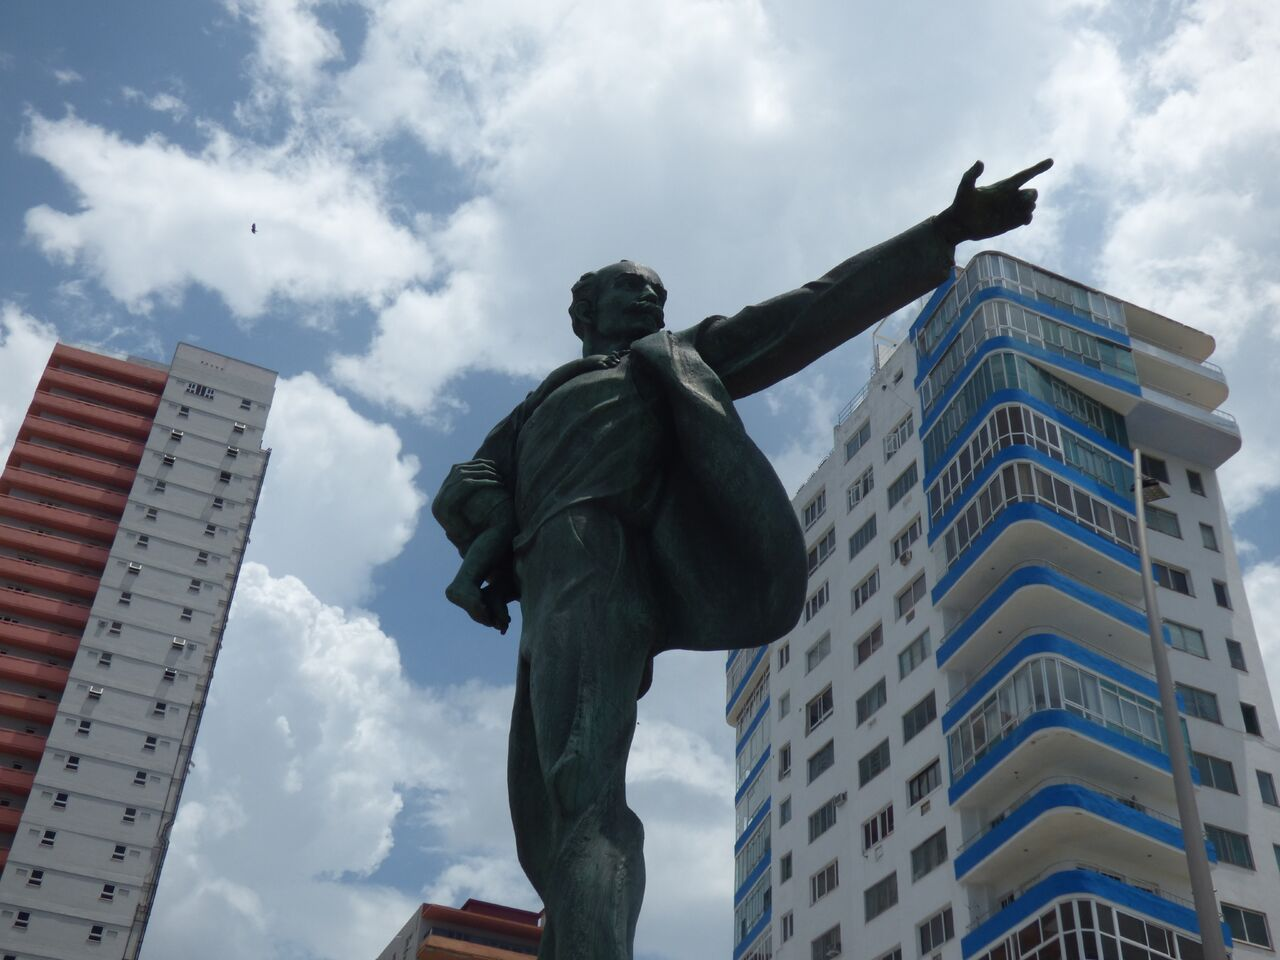 A+statue+of+Jose+Marti+stands+tall+in+Havana%2C+seemingly+larger+than+life+pointing+the+way+towards+the+future.